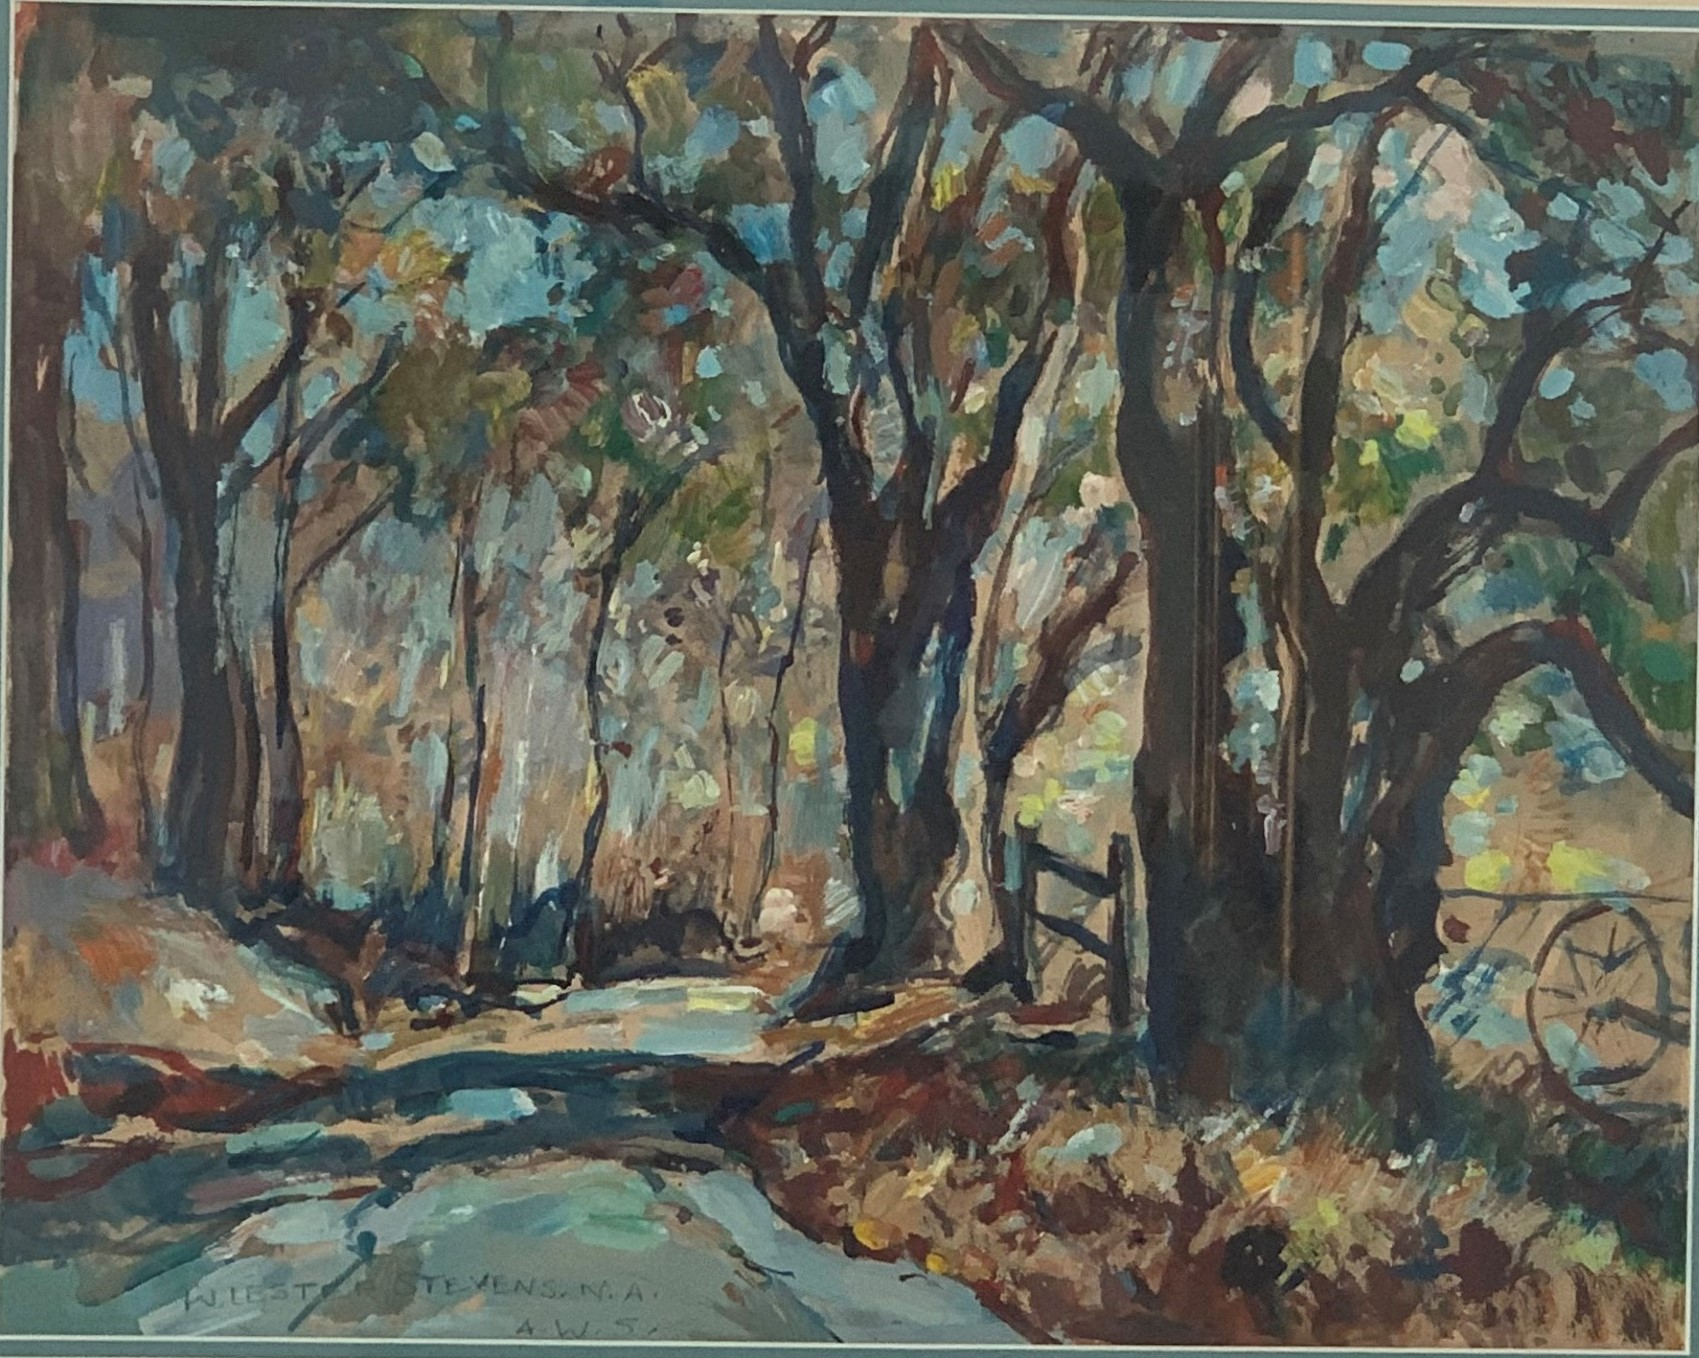 Country Road artwork by William Lester Stevens - art listed for sale on Artplode